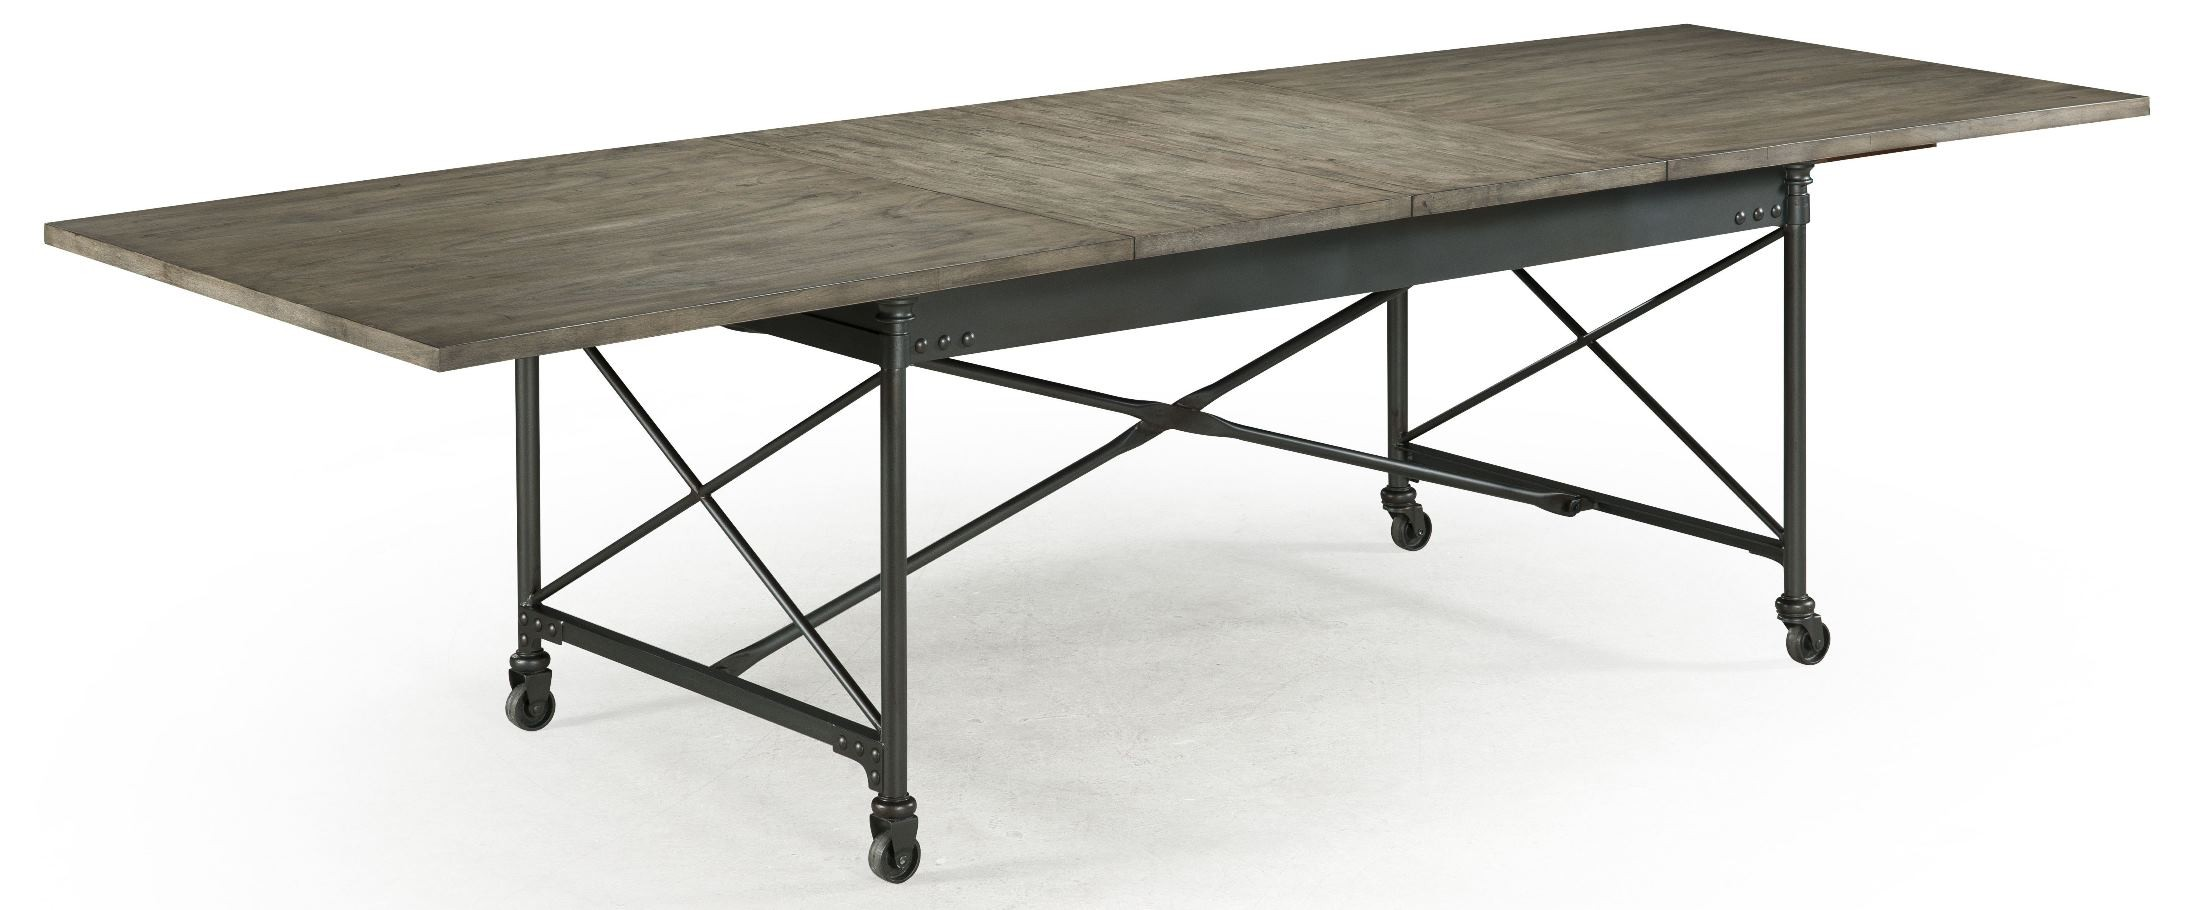 Walton rectangular dining table with casters from magnussen home d2469 20 coleman furniture - Rectangular dining table for 6 ...